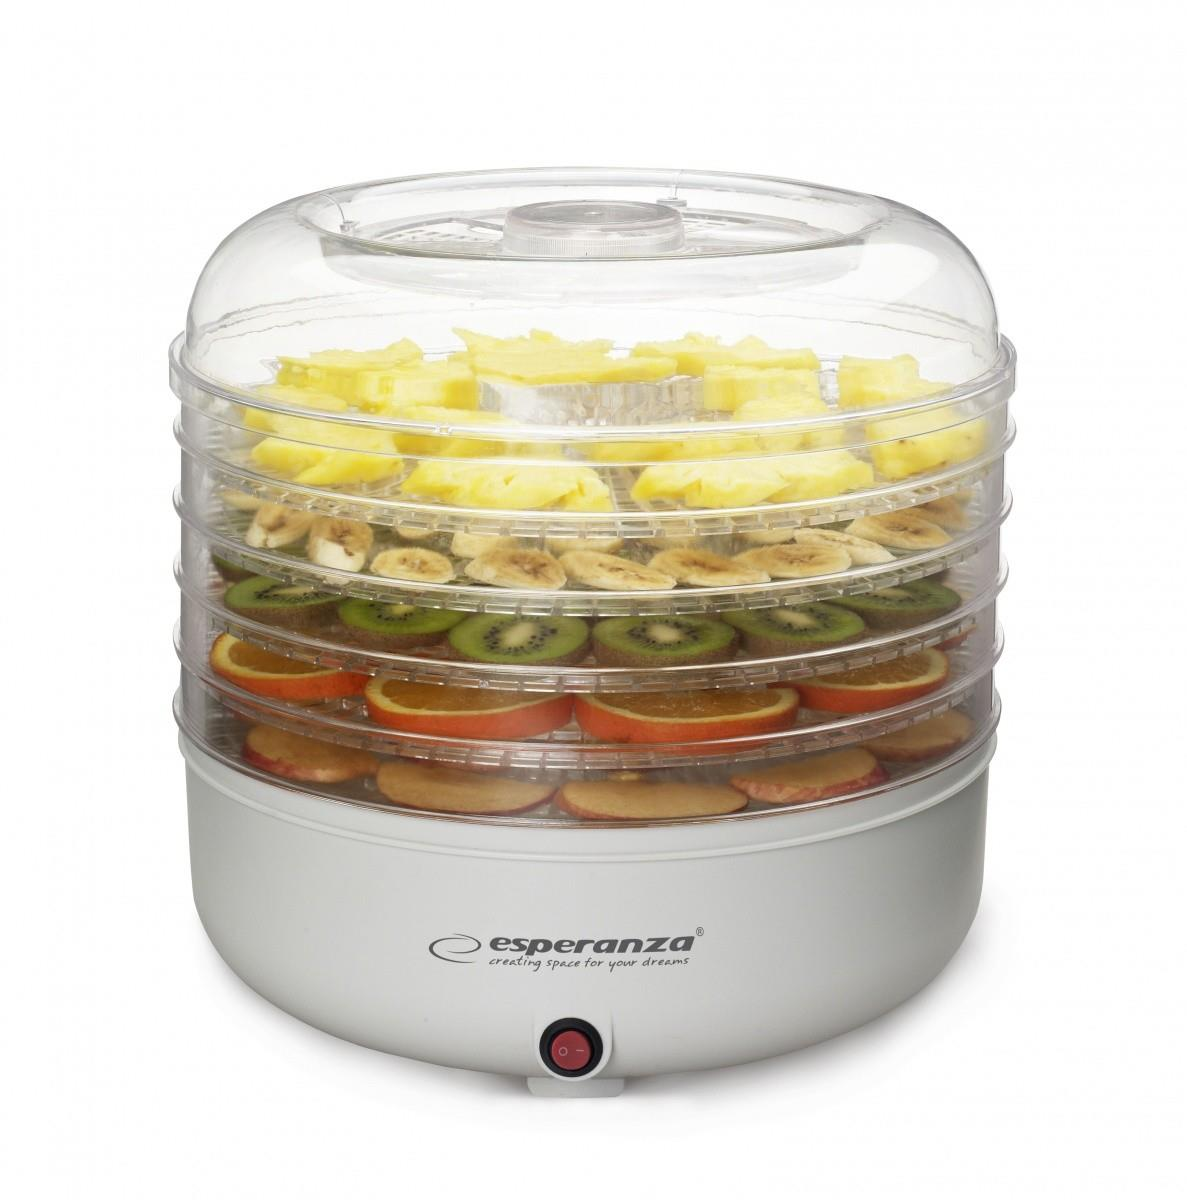 Esperanza EKD001 FOOD DEHYDRATOR FOR MUSHROOMS, FRUITS, VEGETABLES, HERBS Augļu žāvētājs